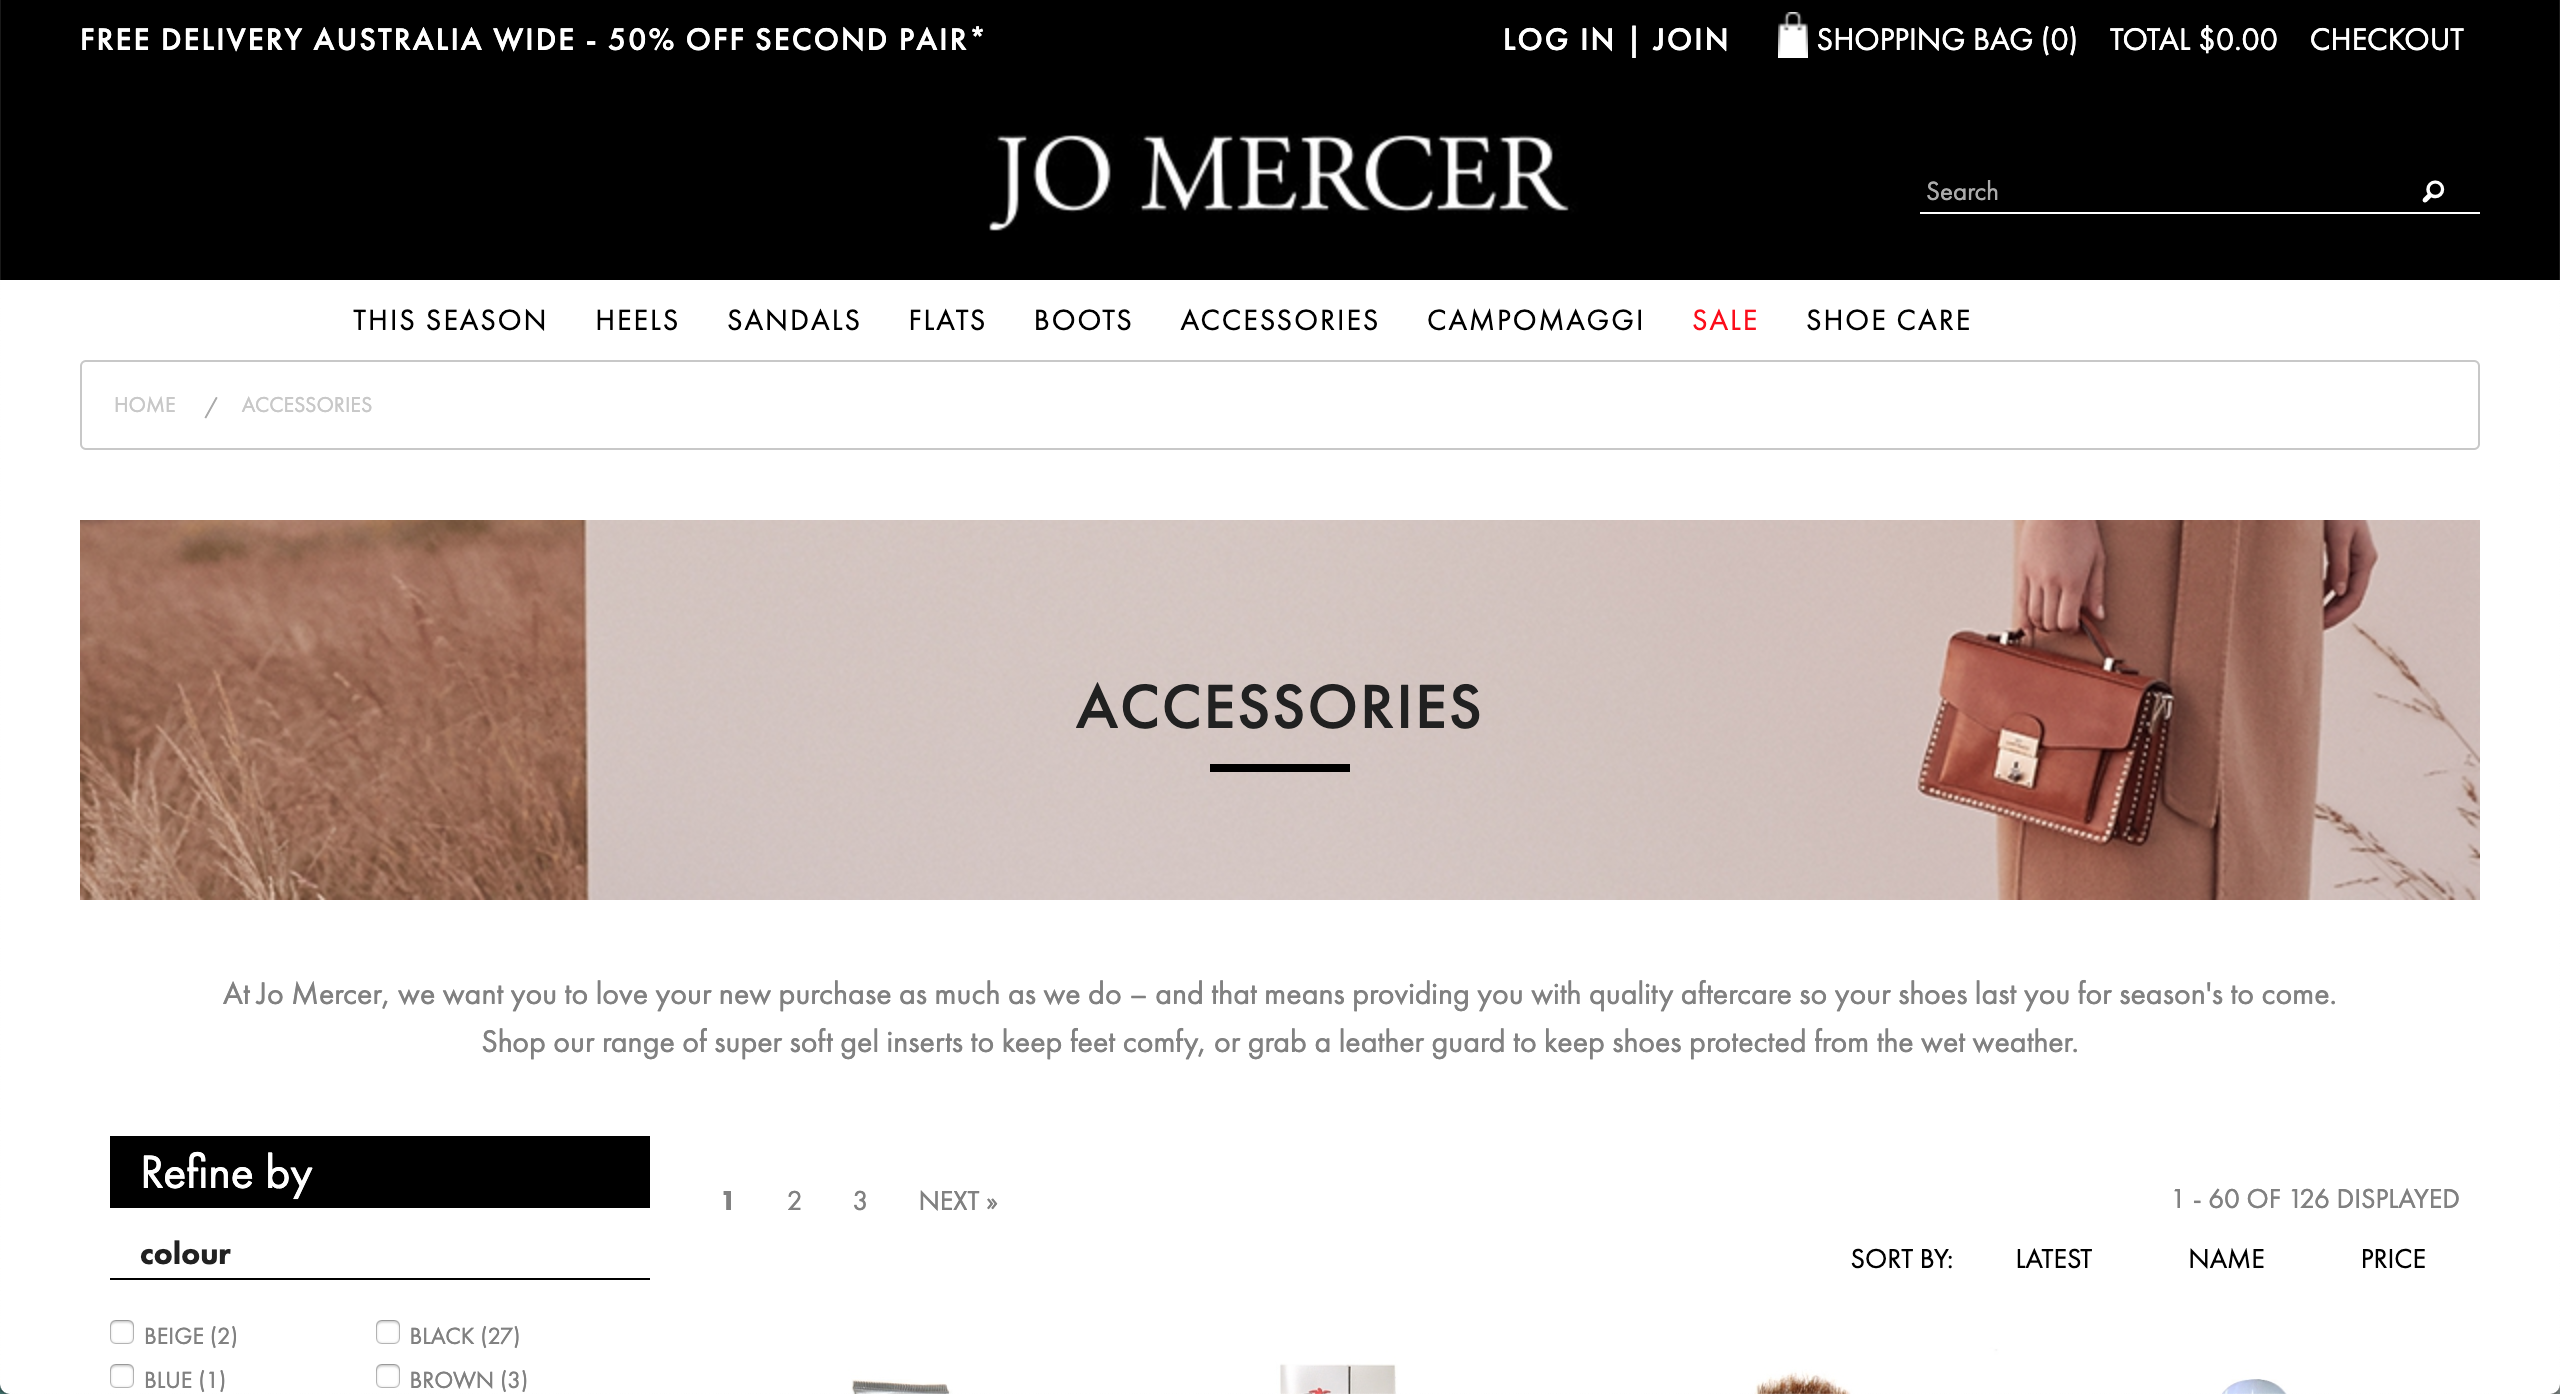 Jo Mercer accessories page